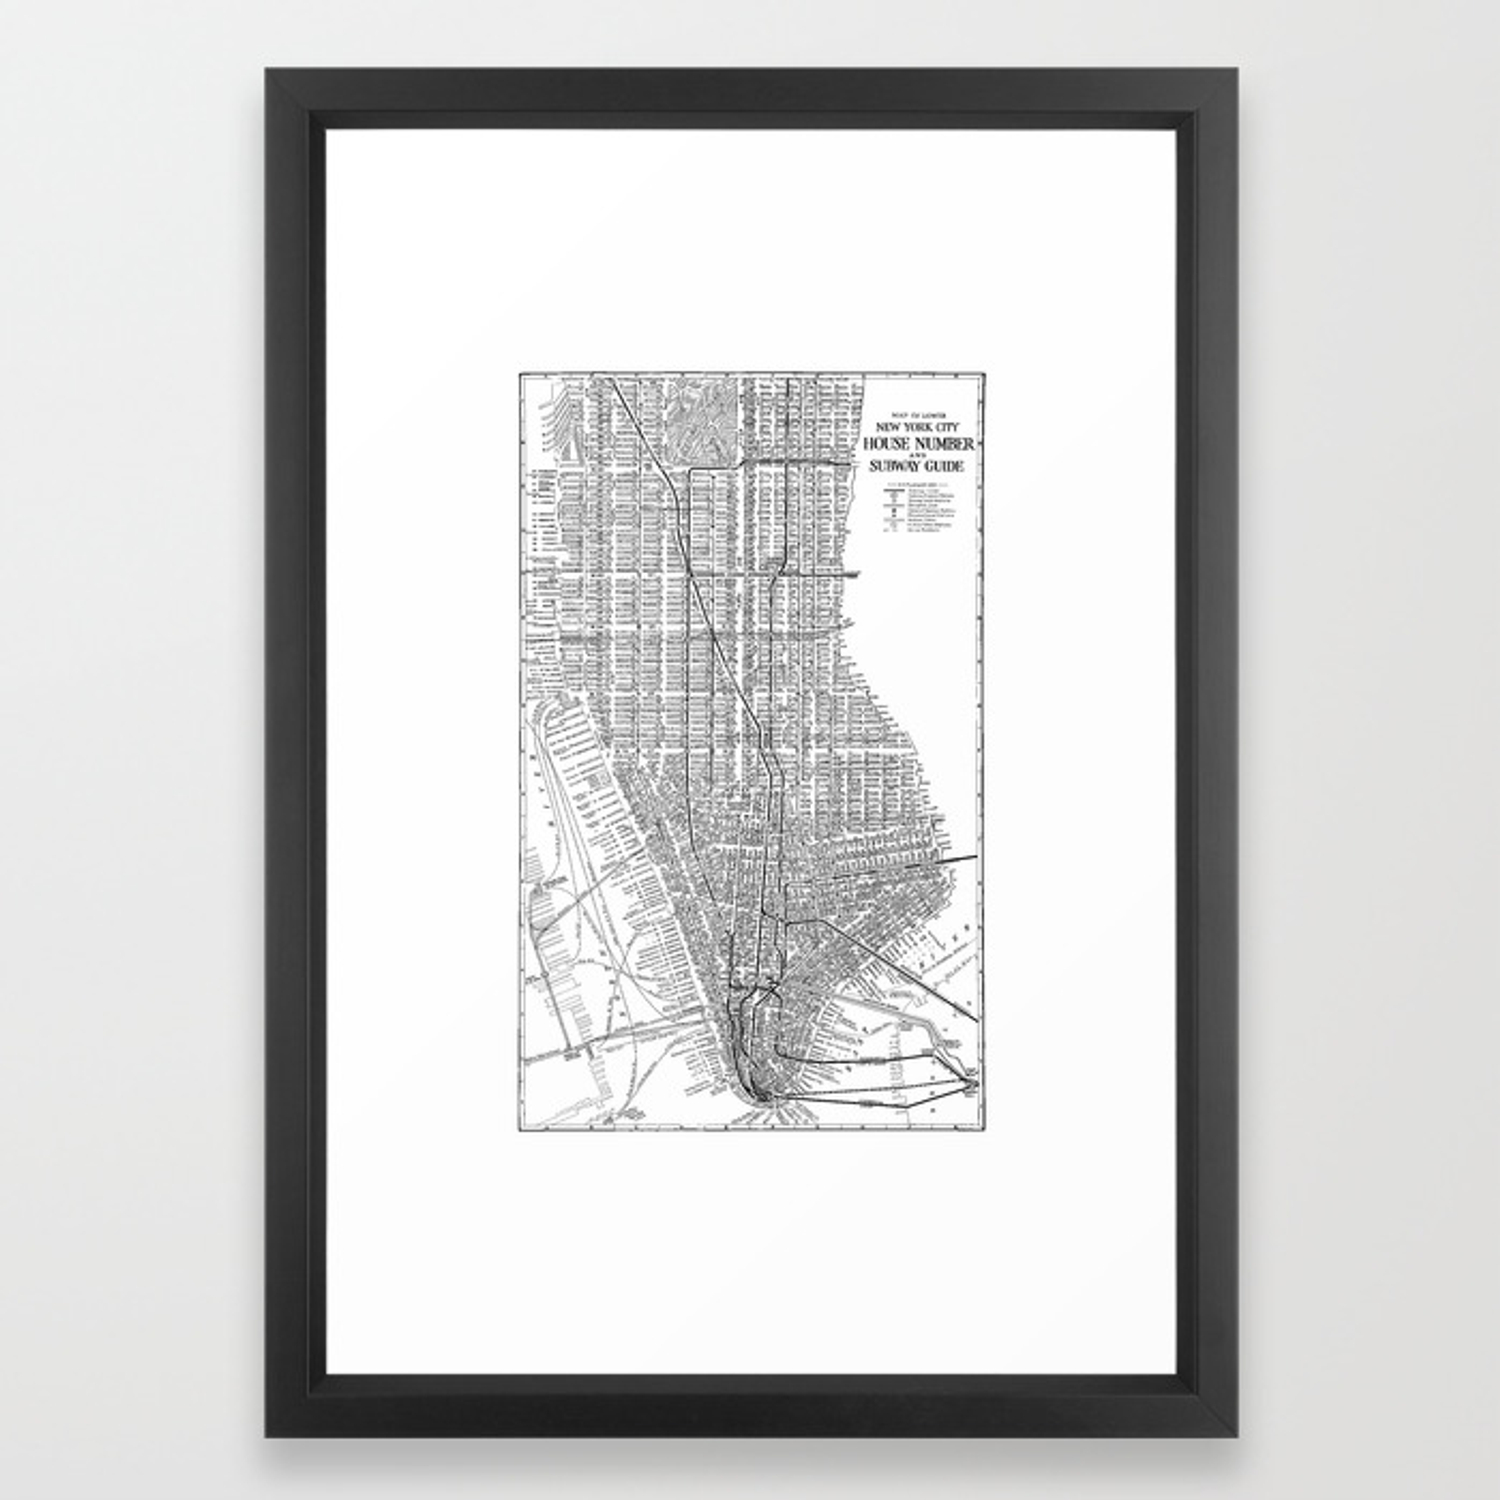 Subway Map Manhattan New York.New York City Subway Map New York City Art Manhattan New York Framed Art Print